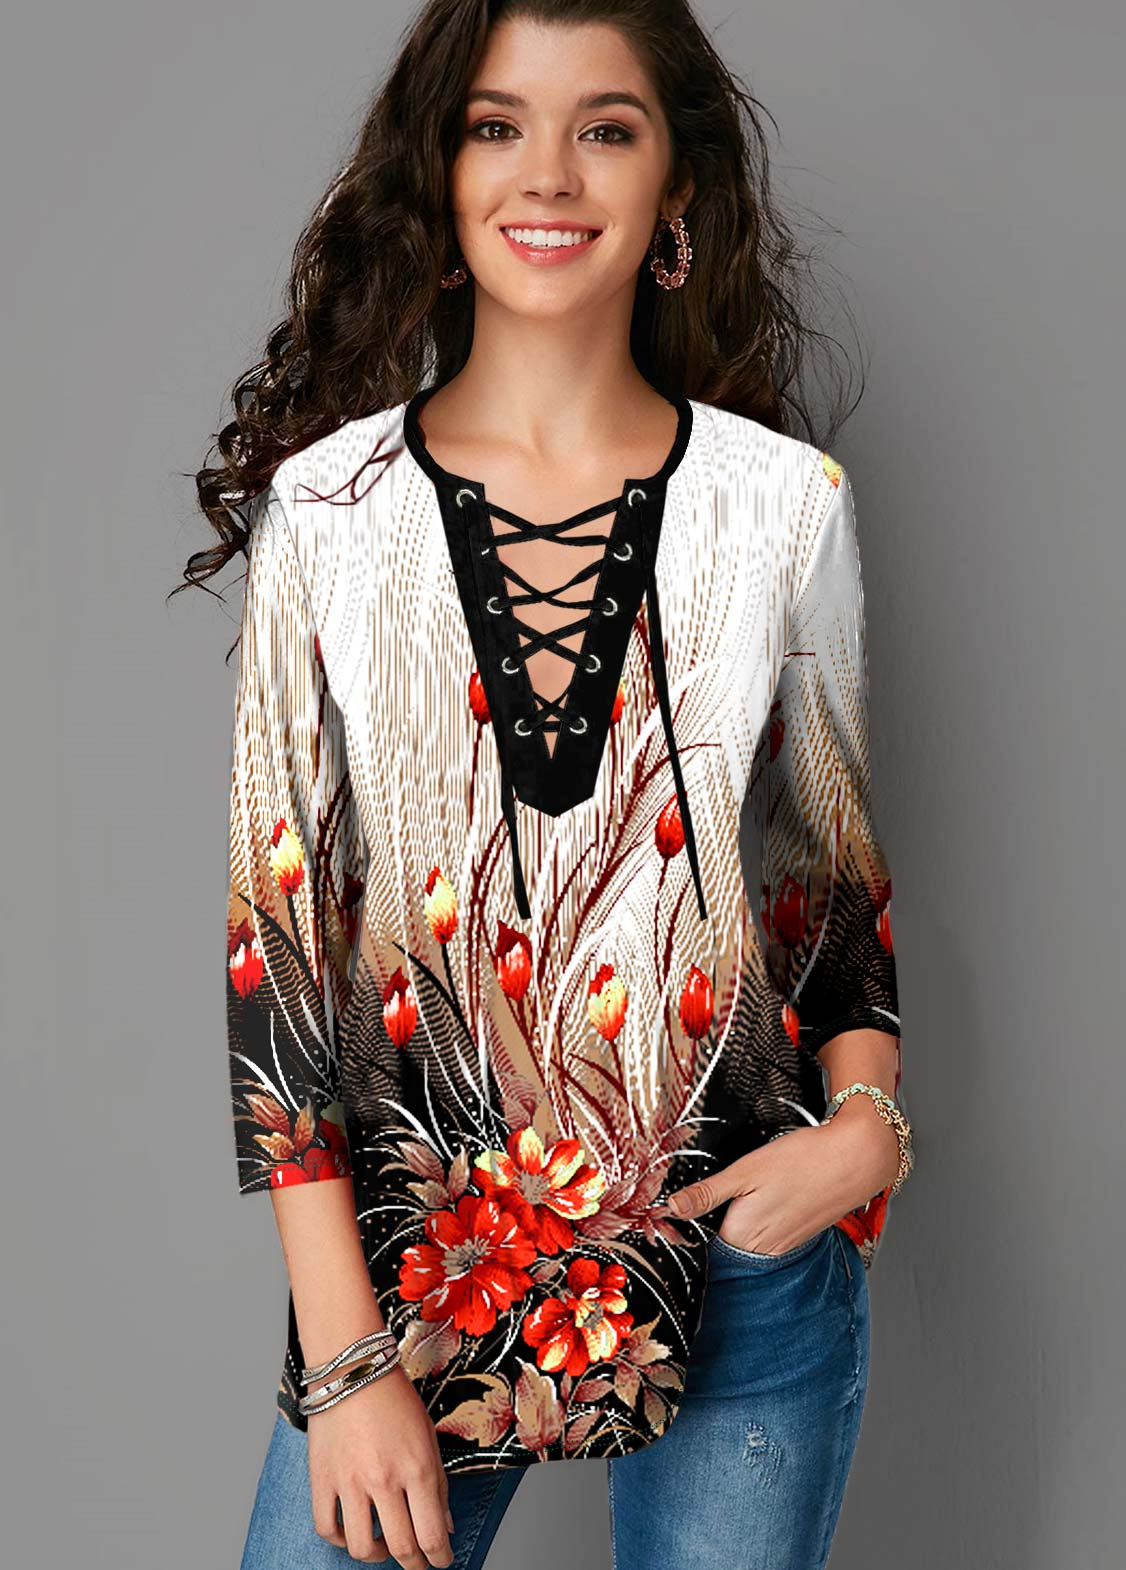 ROTITA Lace Up 3/4 Sleeve Floral Print Blouse